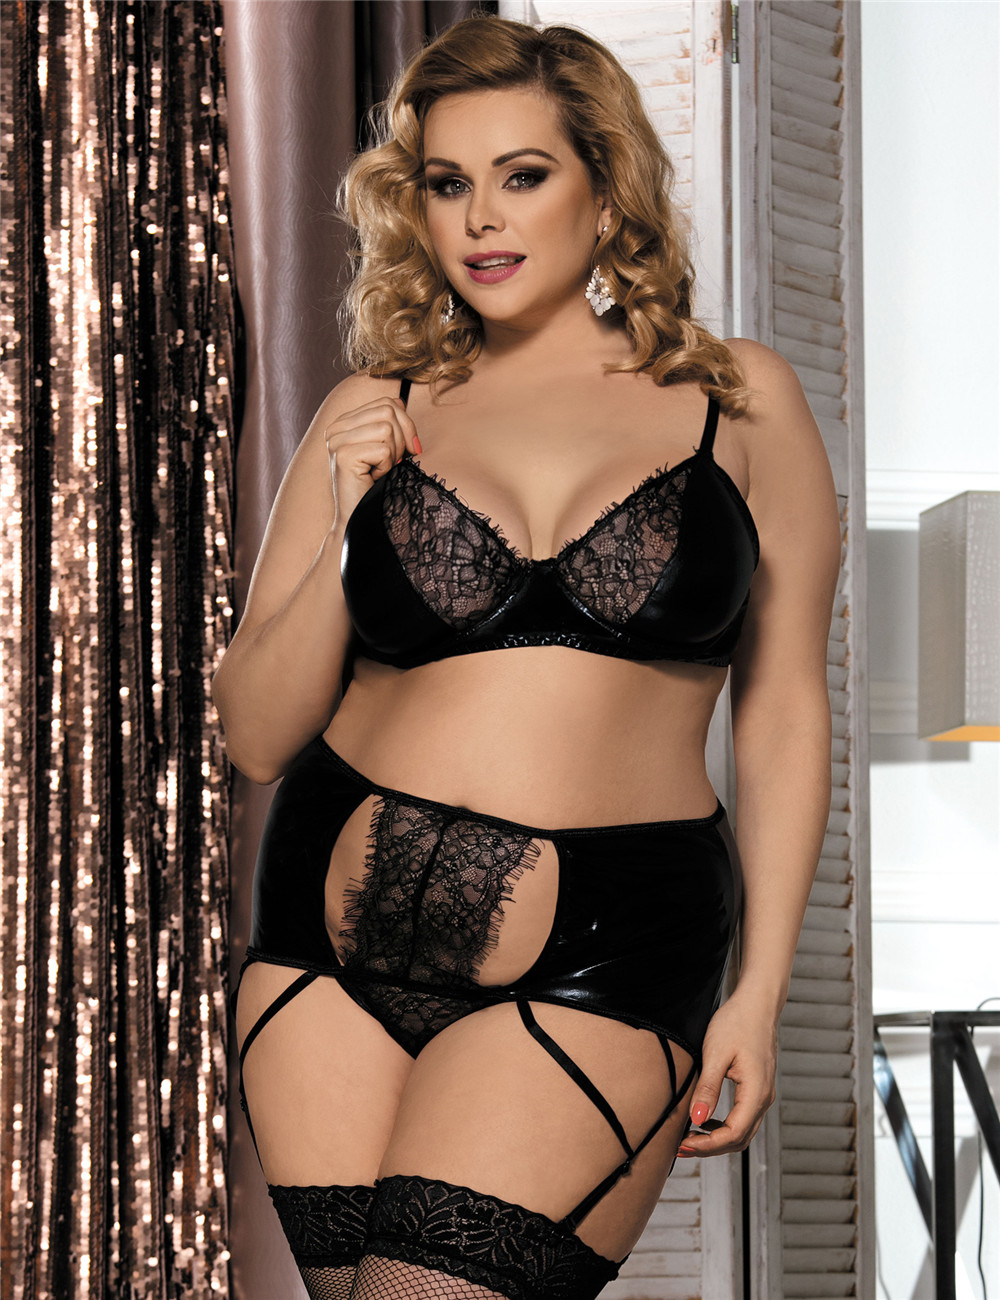 Hot Sale Cheap Wholesale Plus Size Leather Lingerie Plus